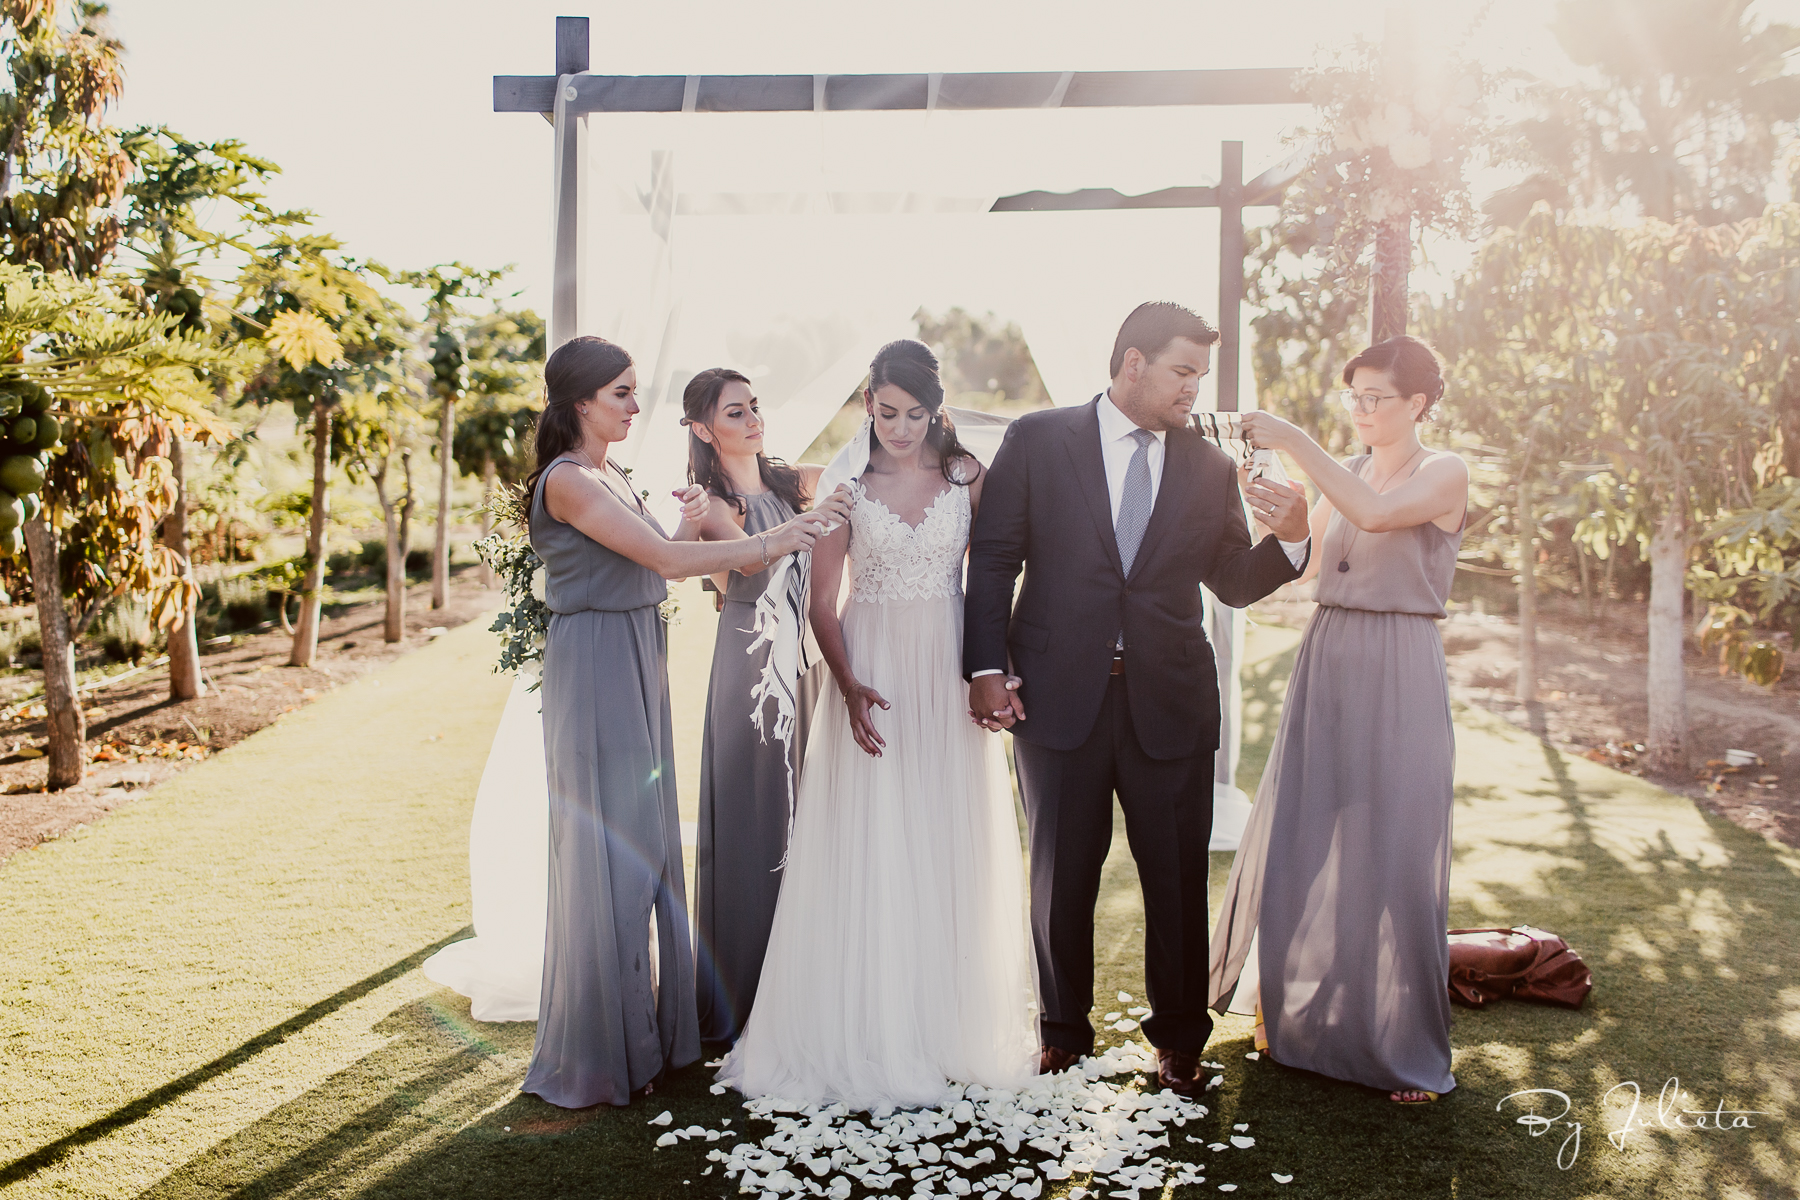 FlorasFarmWedding.L+S.JulietaAmezcuaPhotography.(279of750).jpg